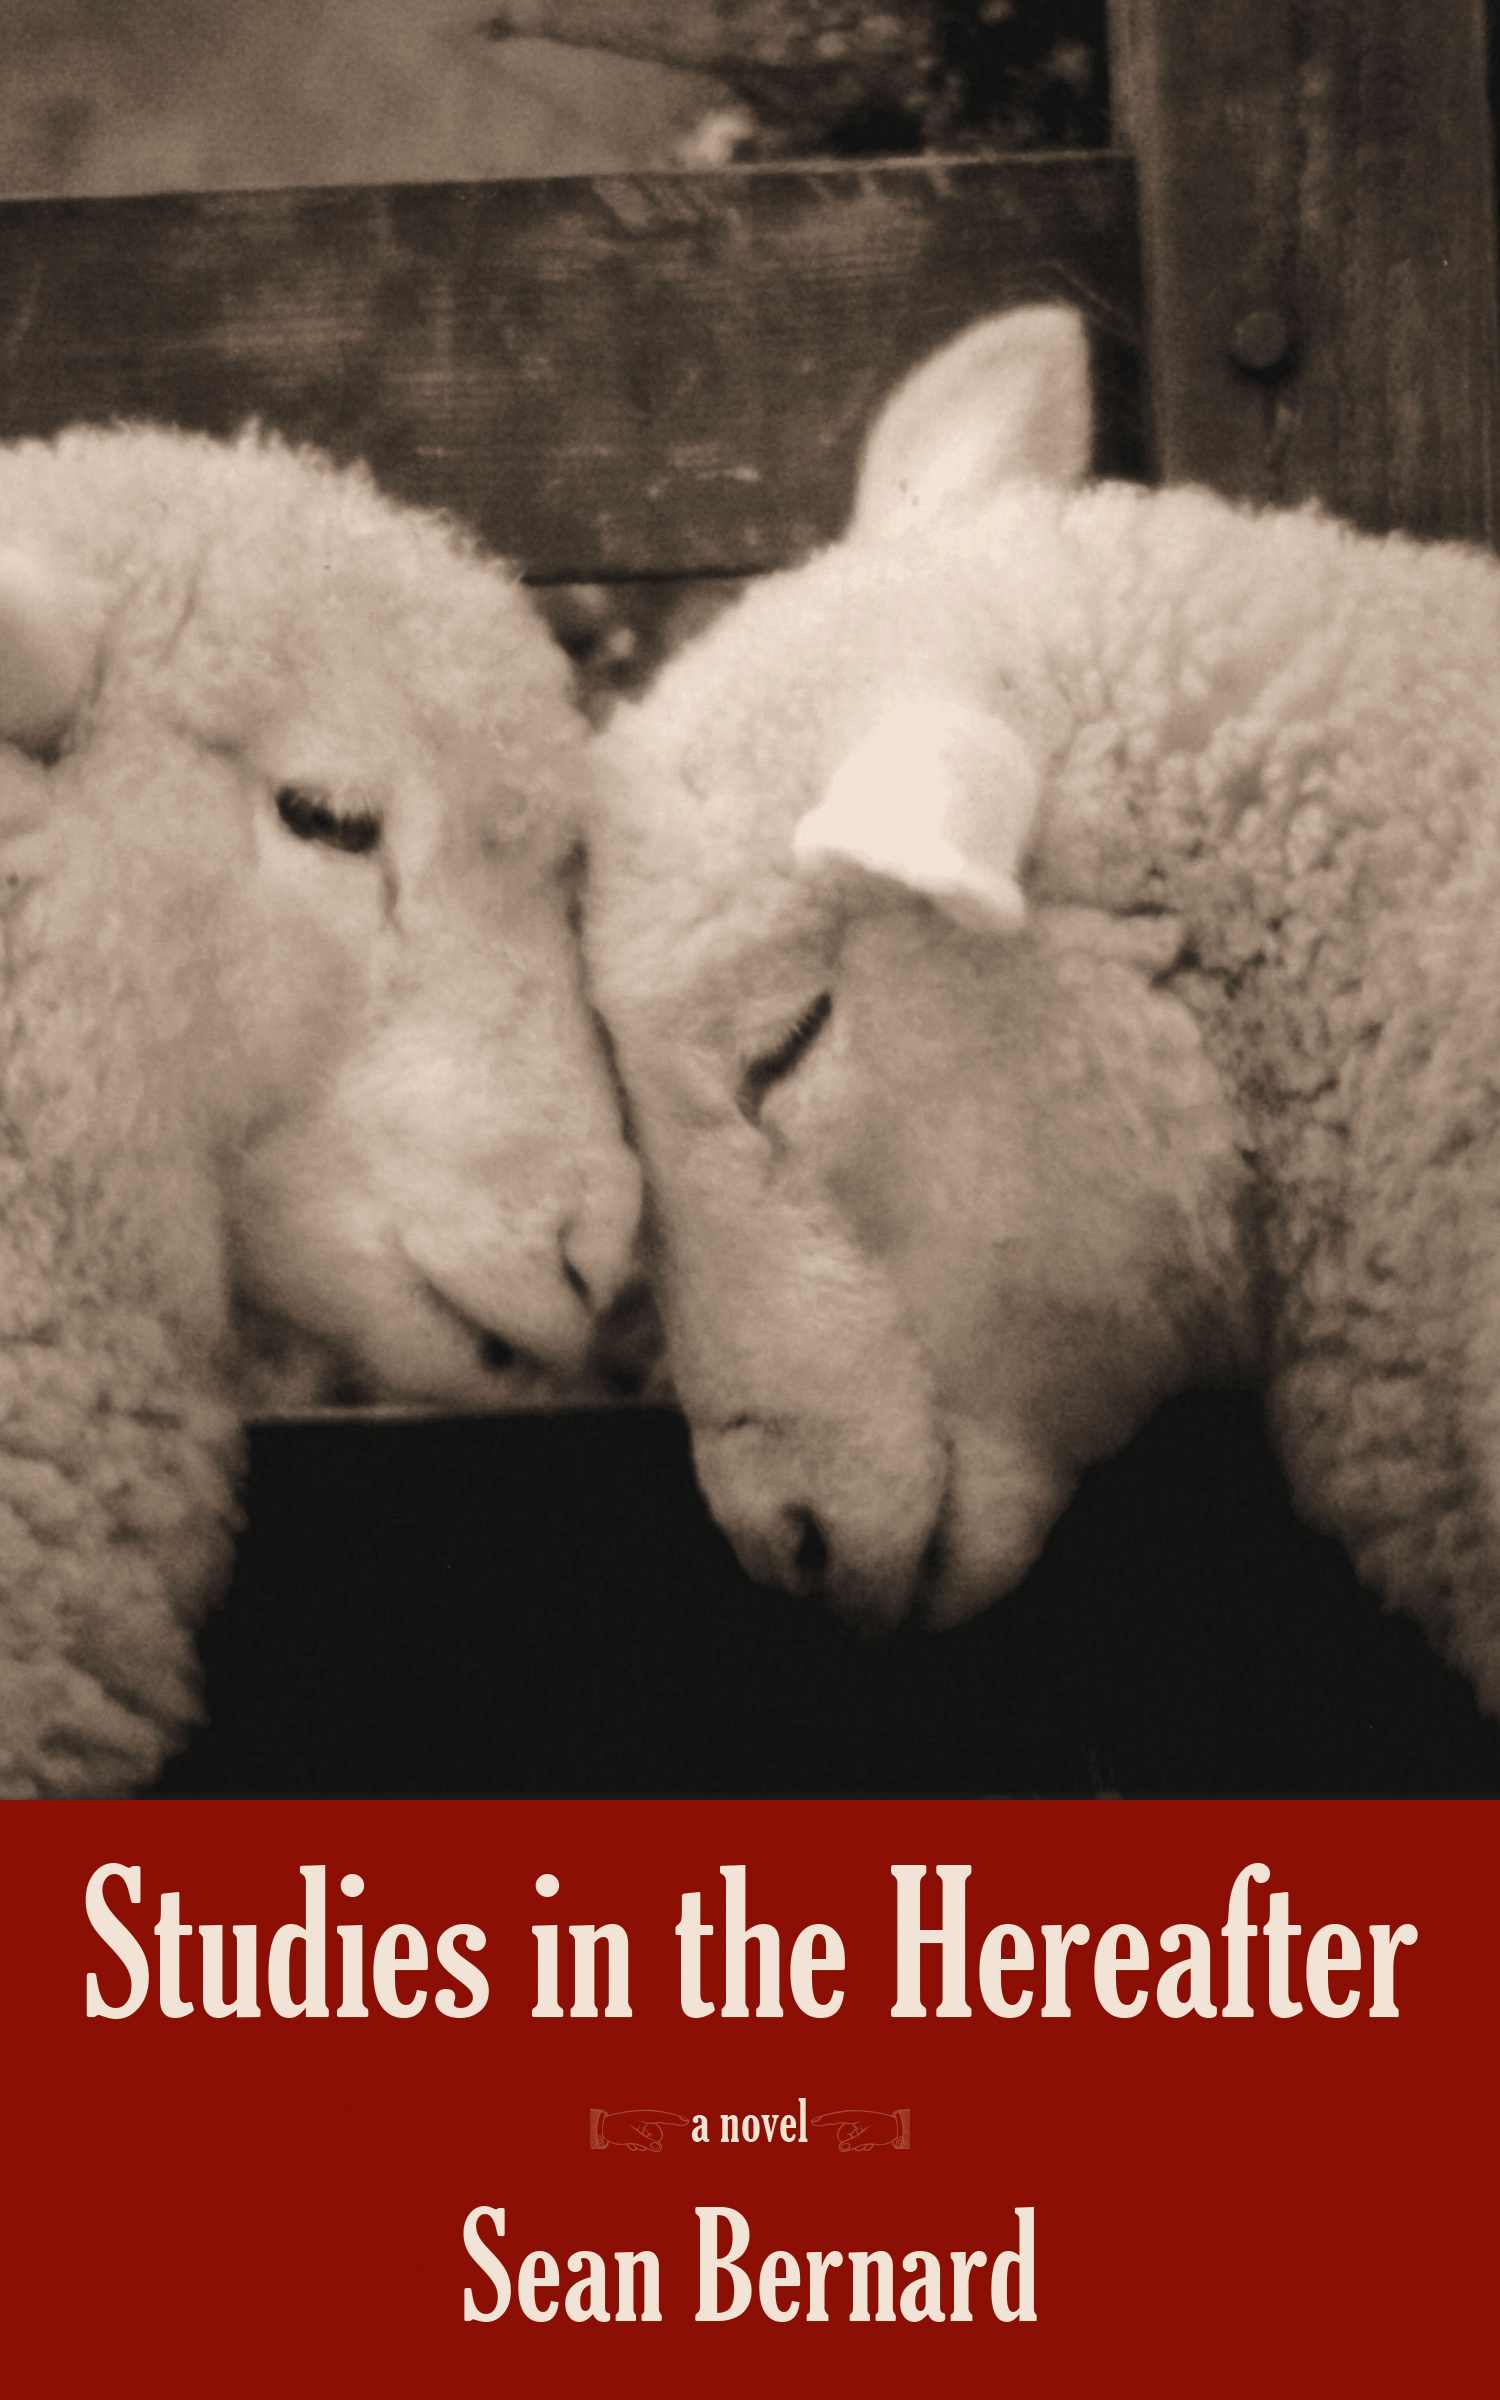 """An image of two sheep with their foreheads touching, a red background with white text """"Studies in the Hereafter a novel Sean Bernard"""